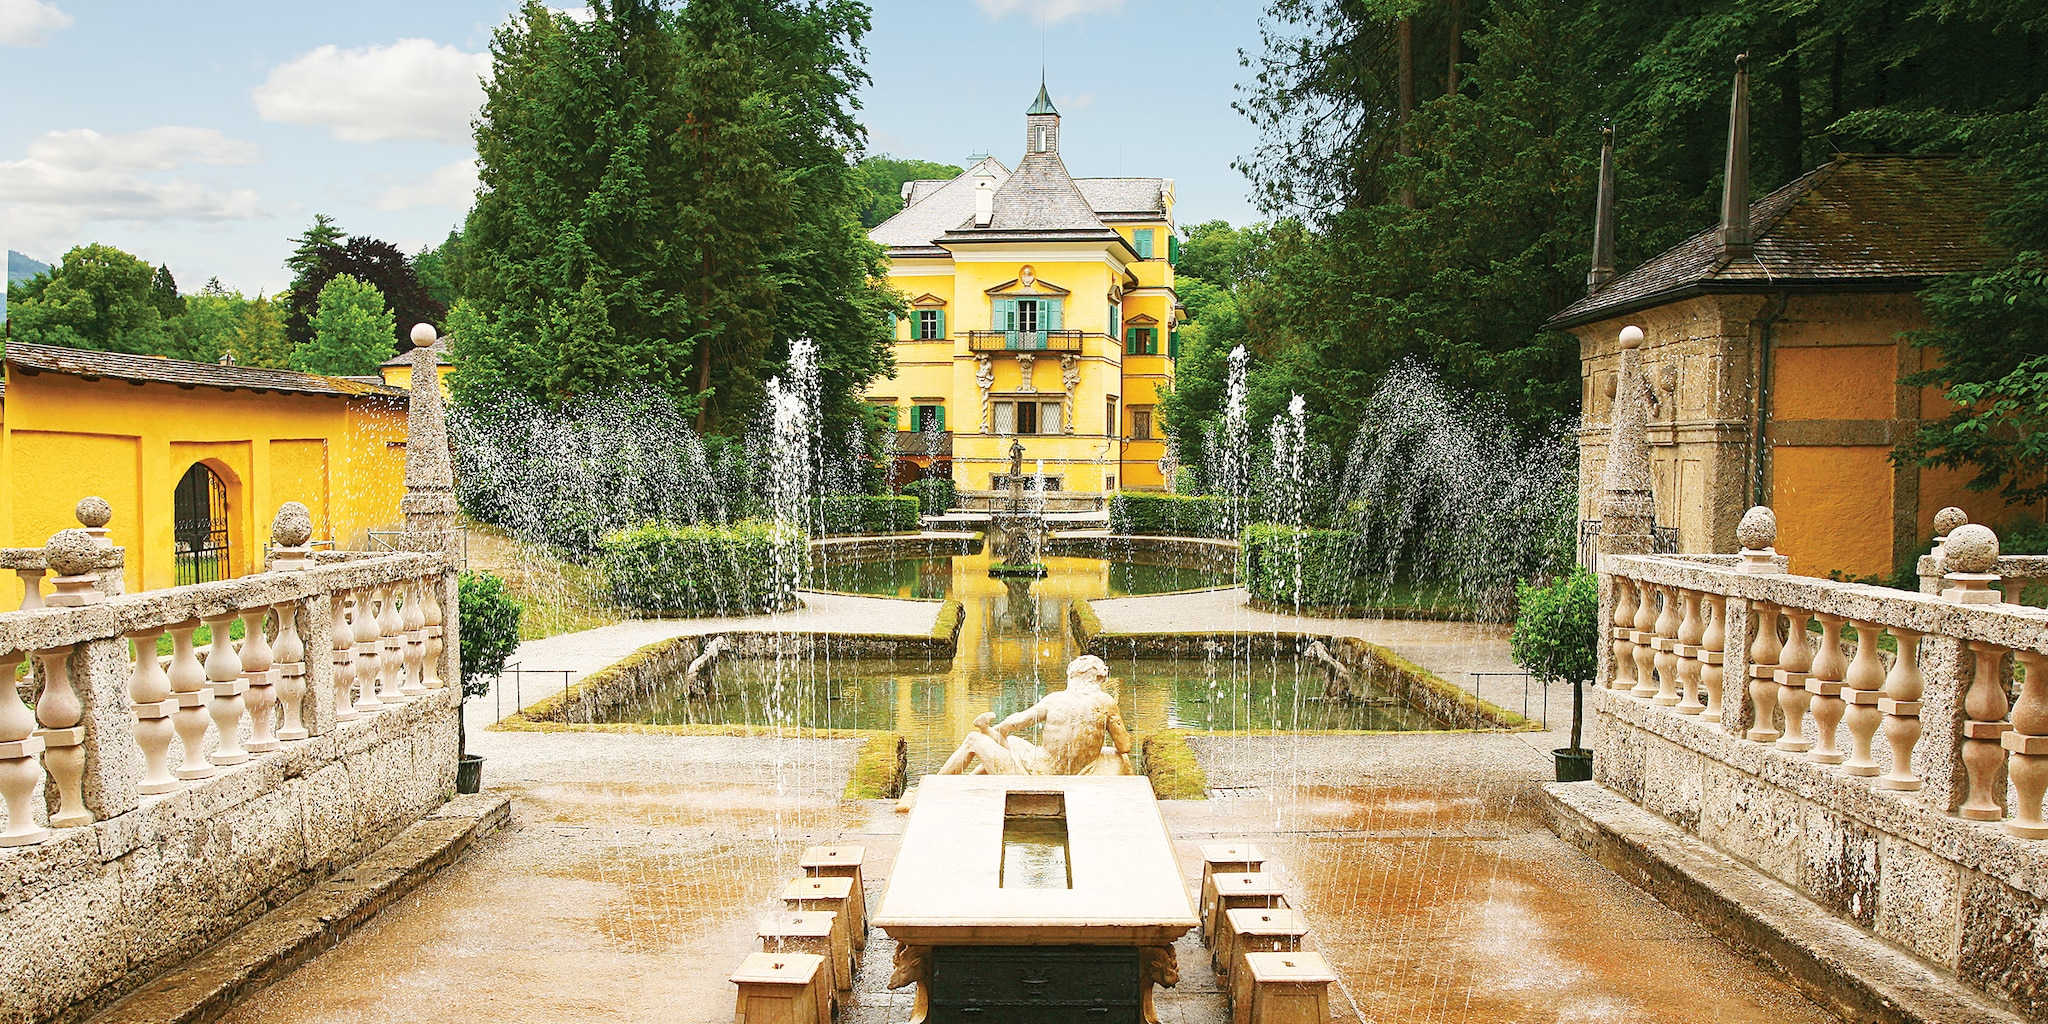 The fountains of Hellbrunn Palace spray water in symetrical lines in front of a statue